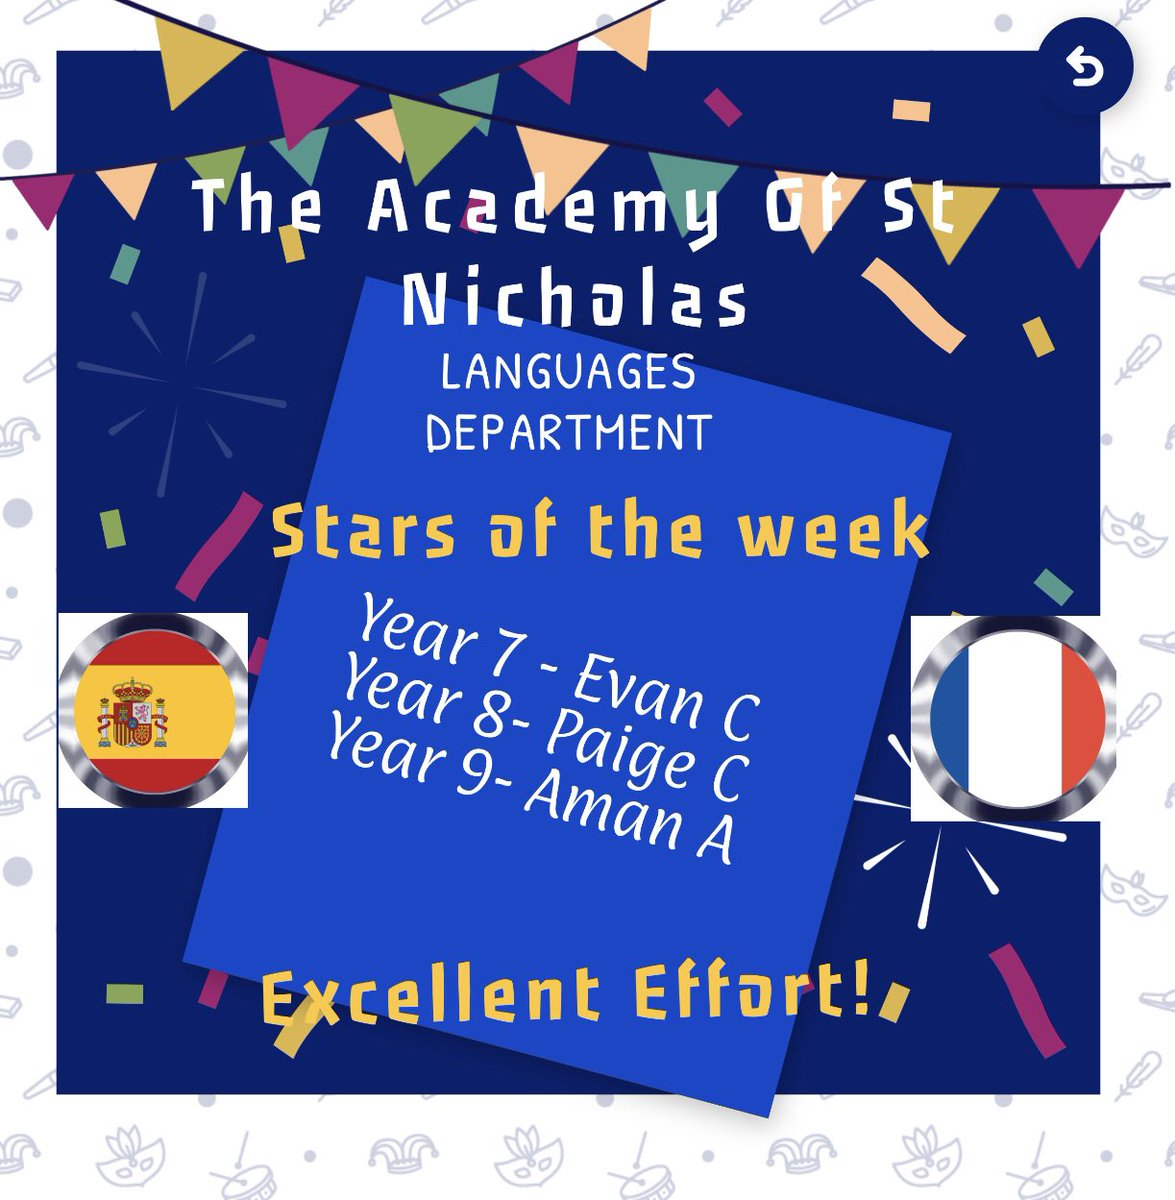 French and Spanish 'Stars of the week' this week ... 🇫🇷🇪🇸 🌟🌟🌟 👏🏻👏🏻👏🏻